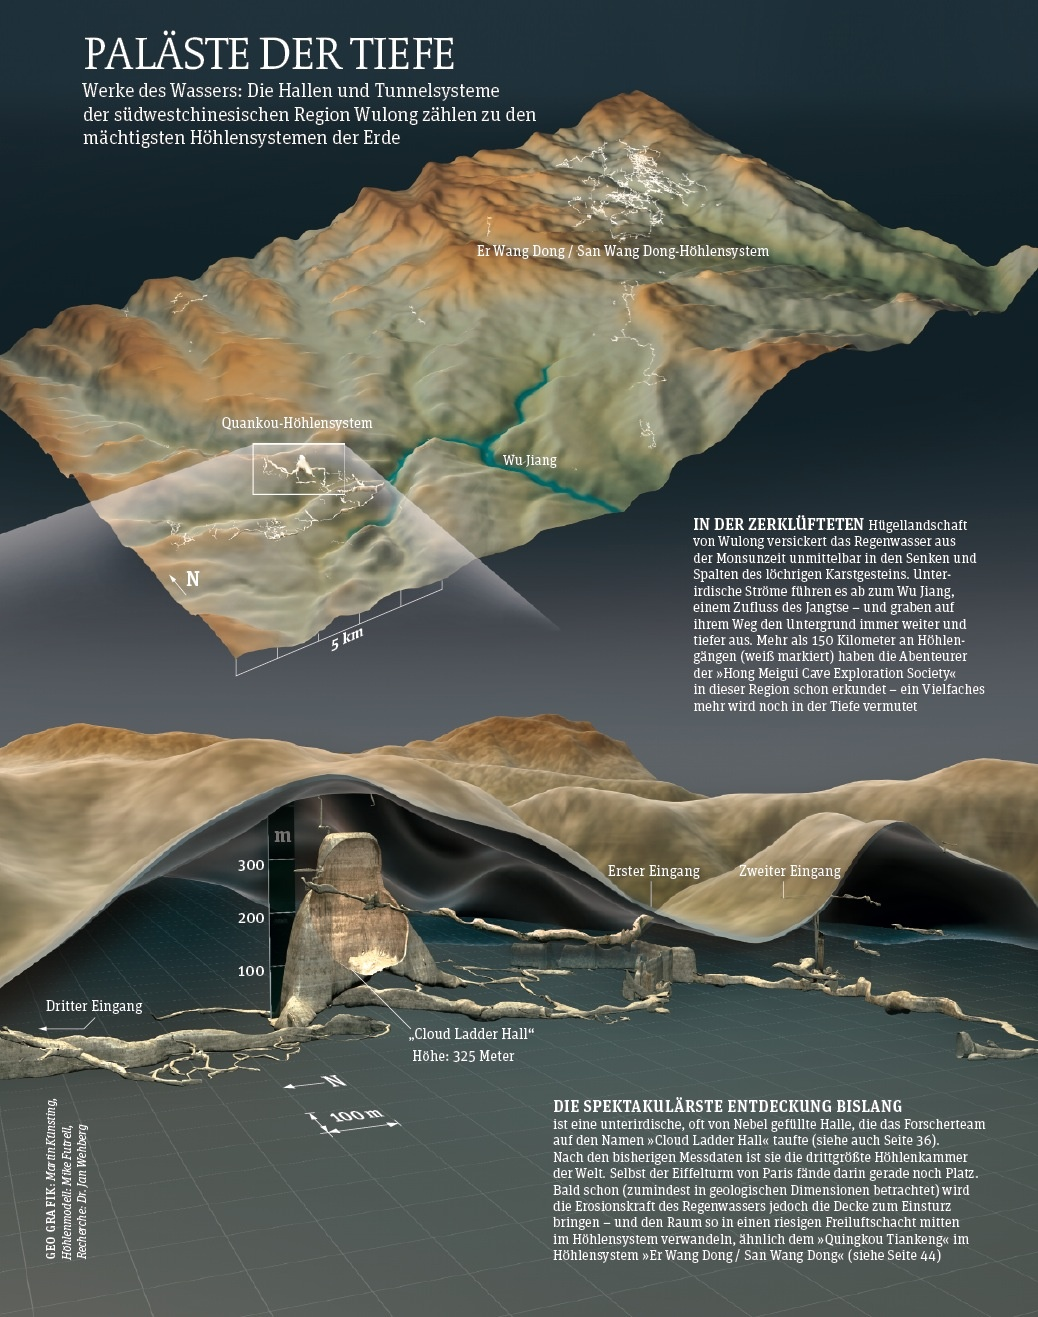 Cave data incorporated into GIS for use in a non-caving magazine. Image from: GEO magazine, March 2013.